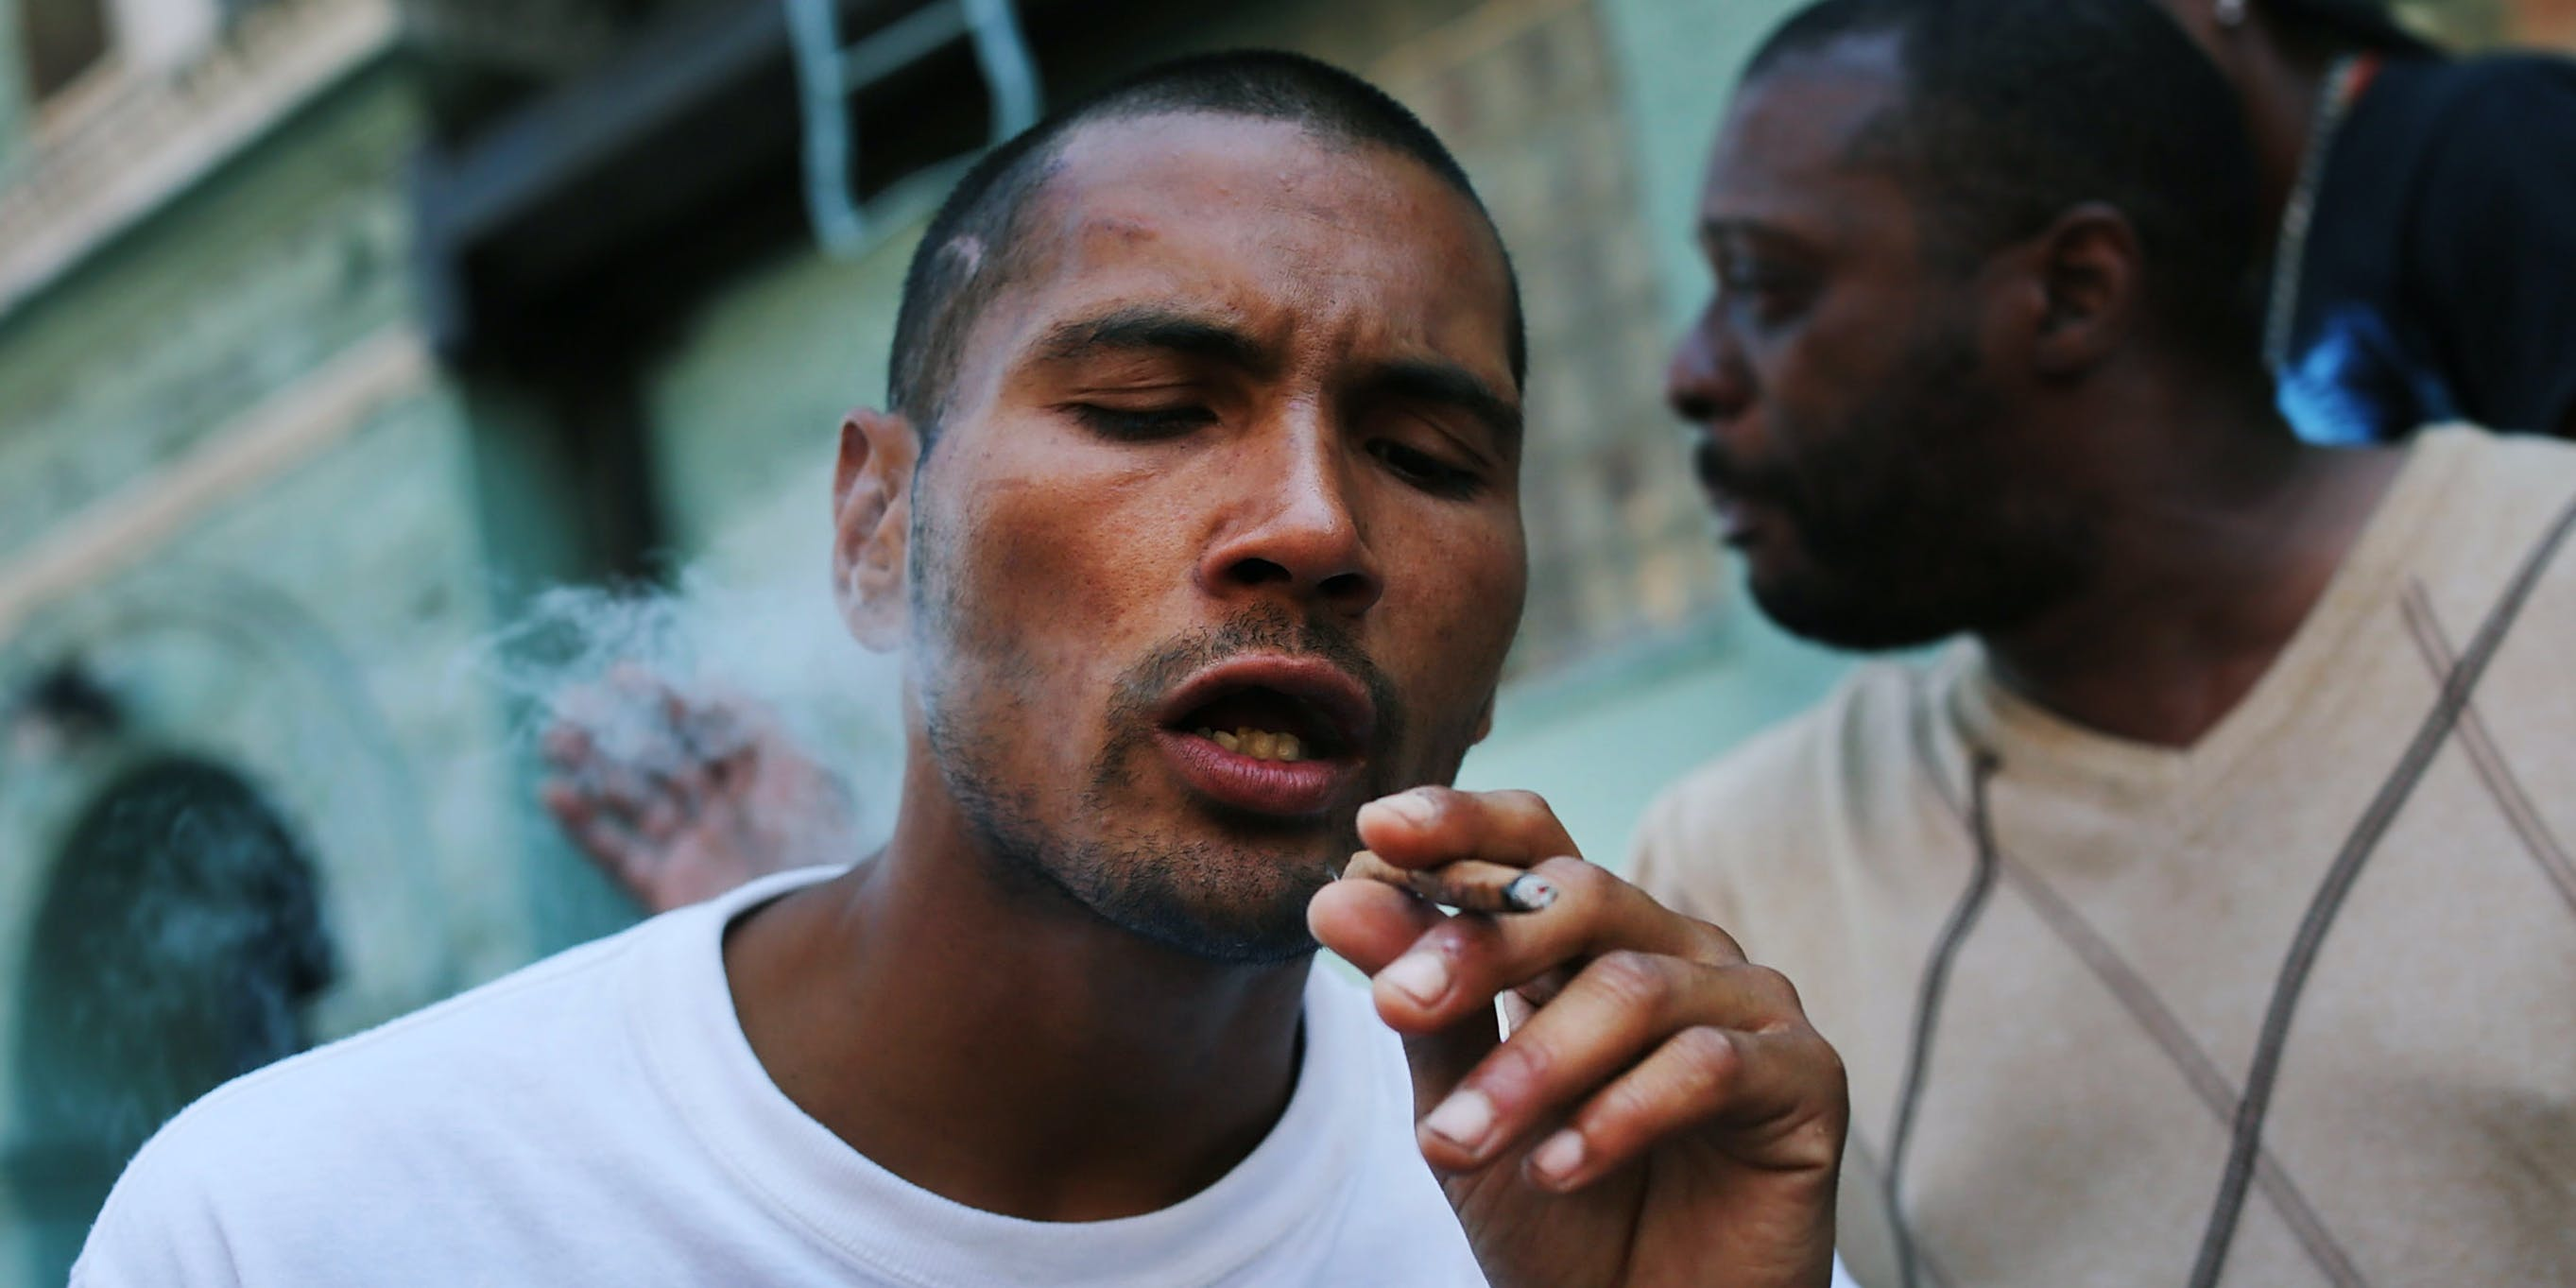 """NEW YORK, NY - AUGUST 05: A man smokes K2 or """"Spice"""", a synthetic weed drug, along a street in East Harlem on August 5, 2015 in New York City. New York, along with other cities, is experiencing a deadly epidemic of synthetic marijuana usage including varieties known as K2 or """"Spice"""" which can cause extreme reactions in some users. (Photo by Spencer Platt/Getty Images)"""